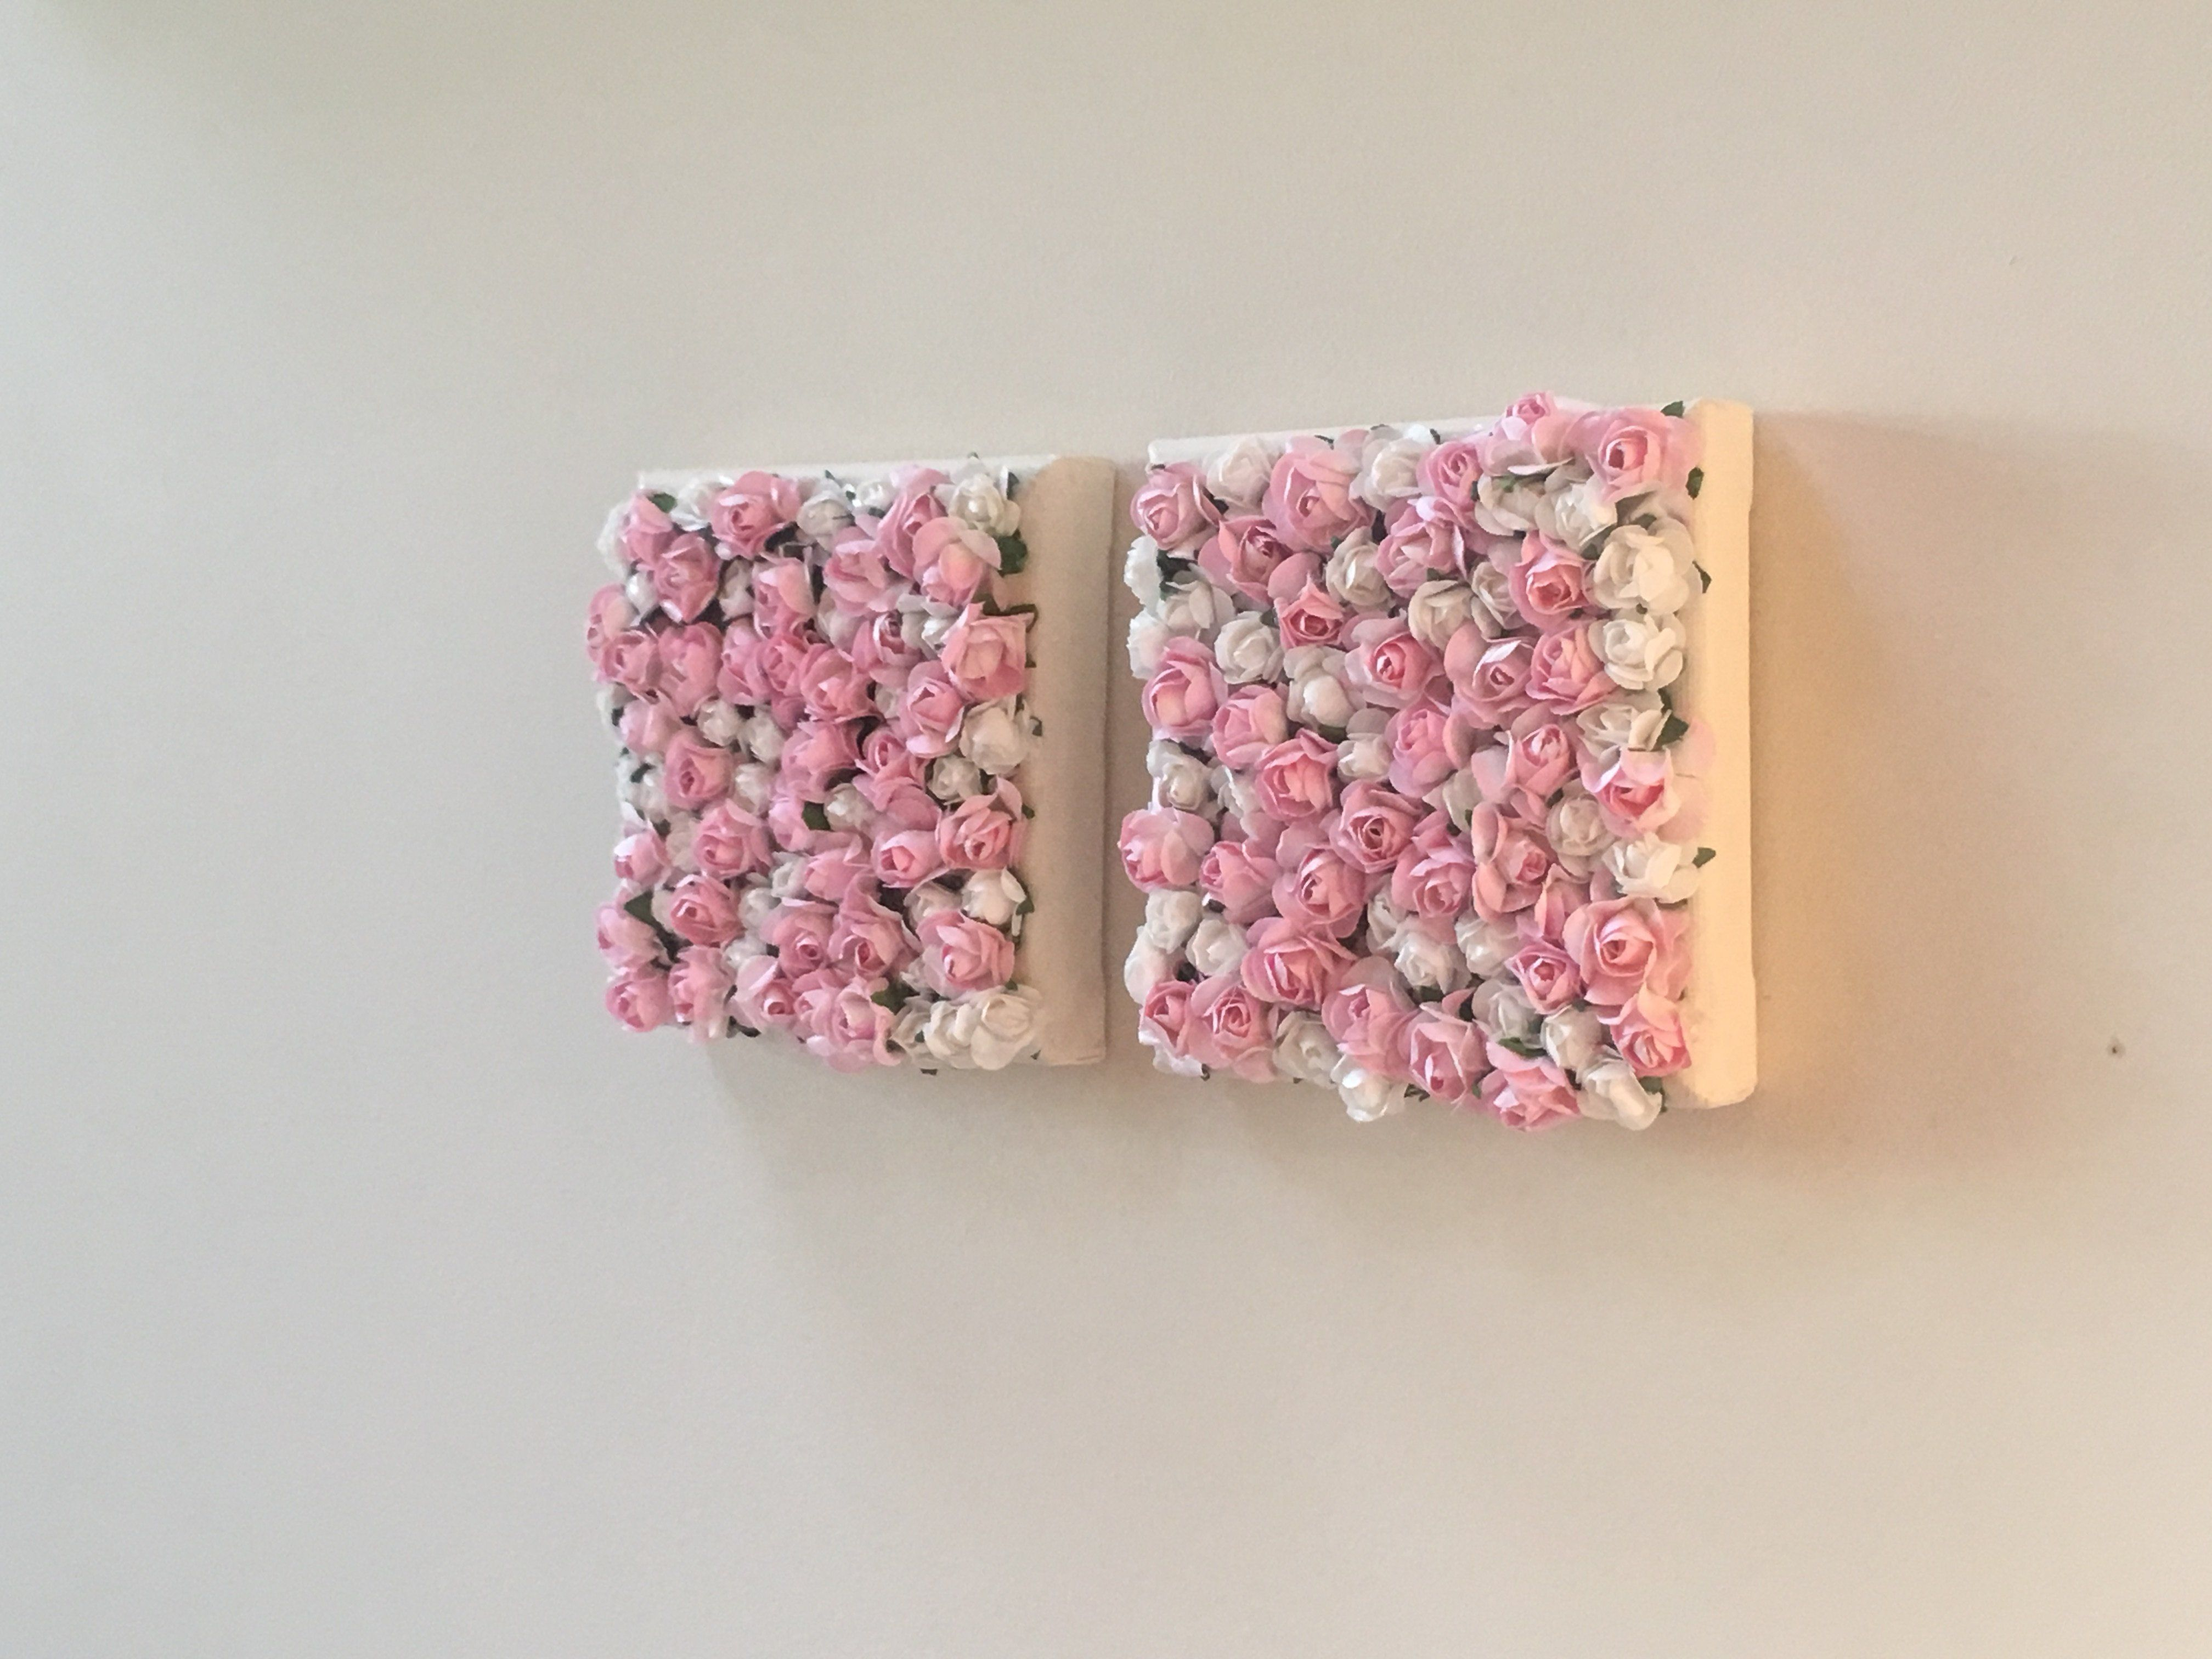 Nursery Wall Decor + Pink and White Rose Paper Flower Wall Decor (4 x 4)